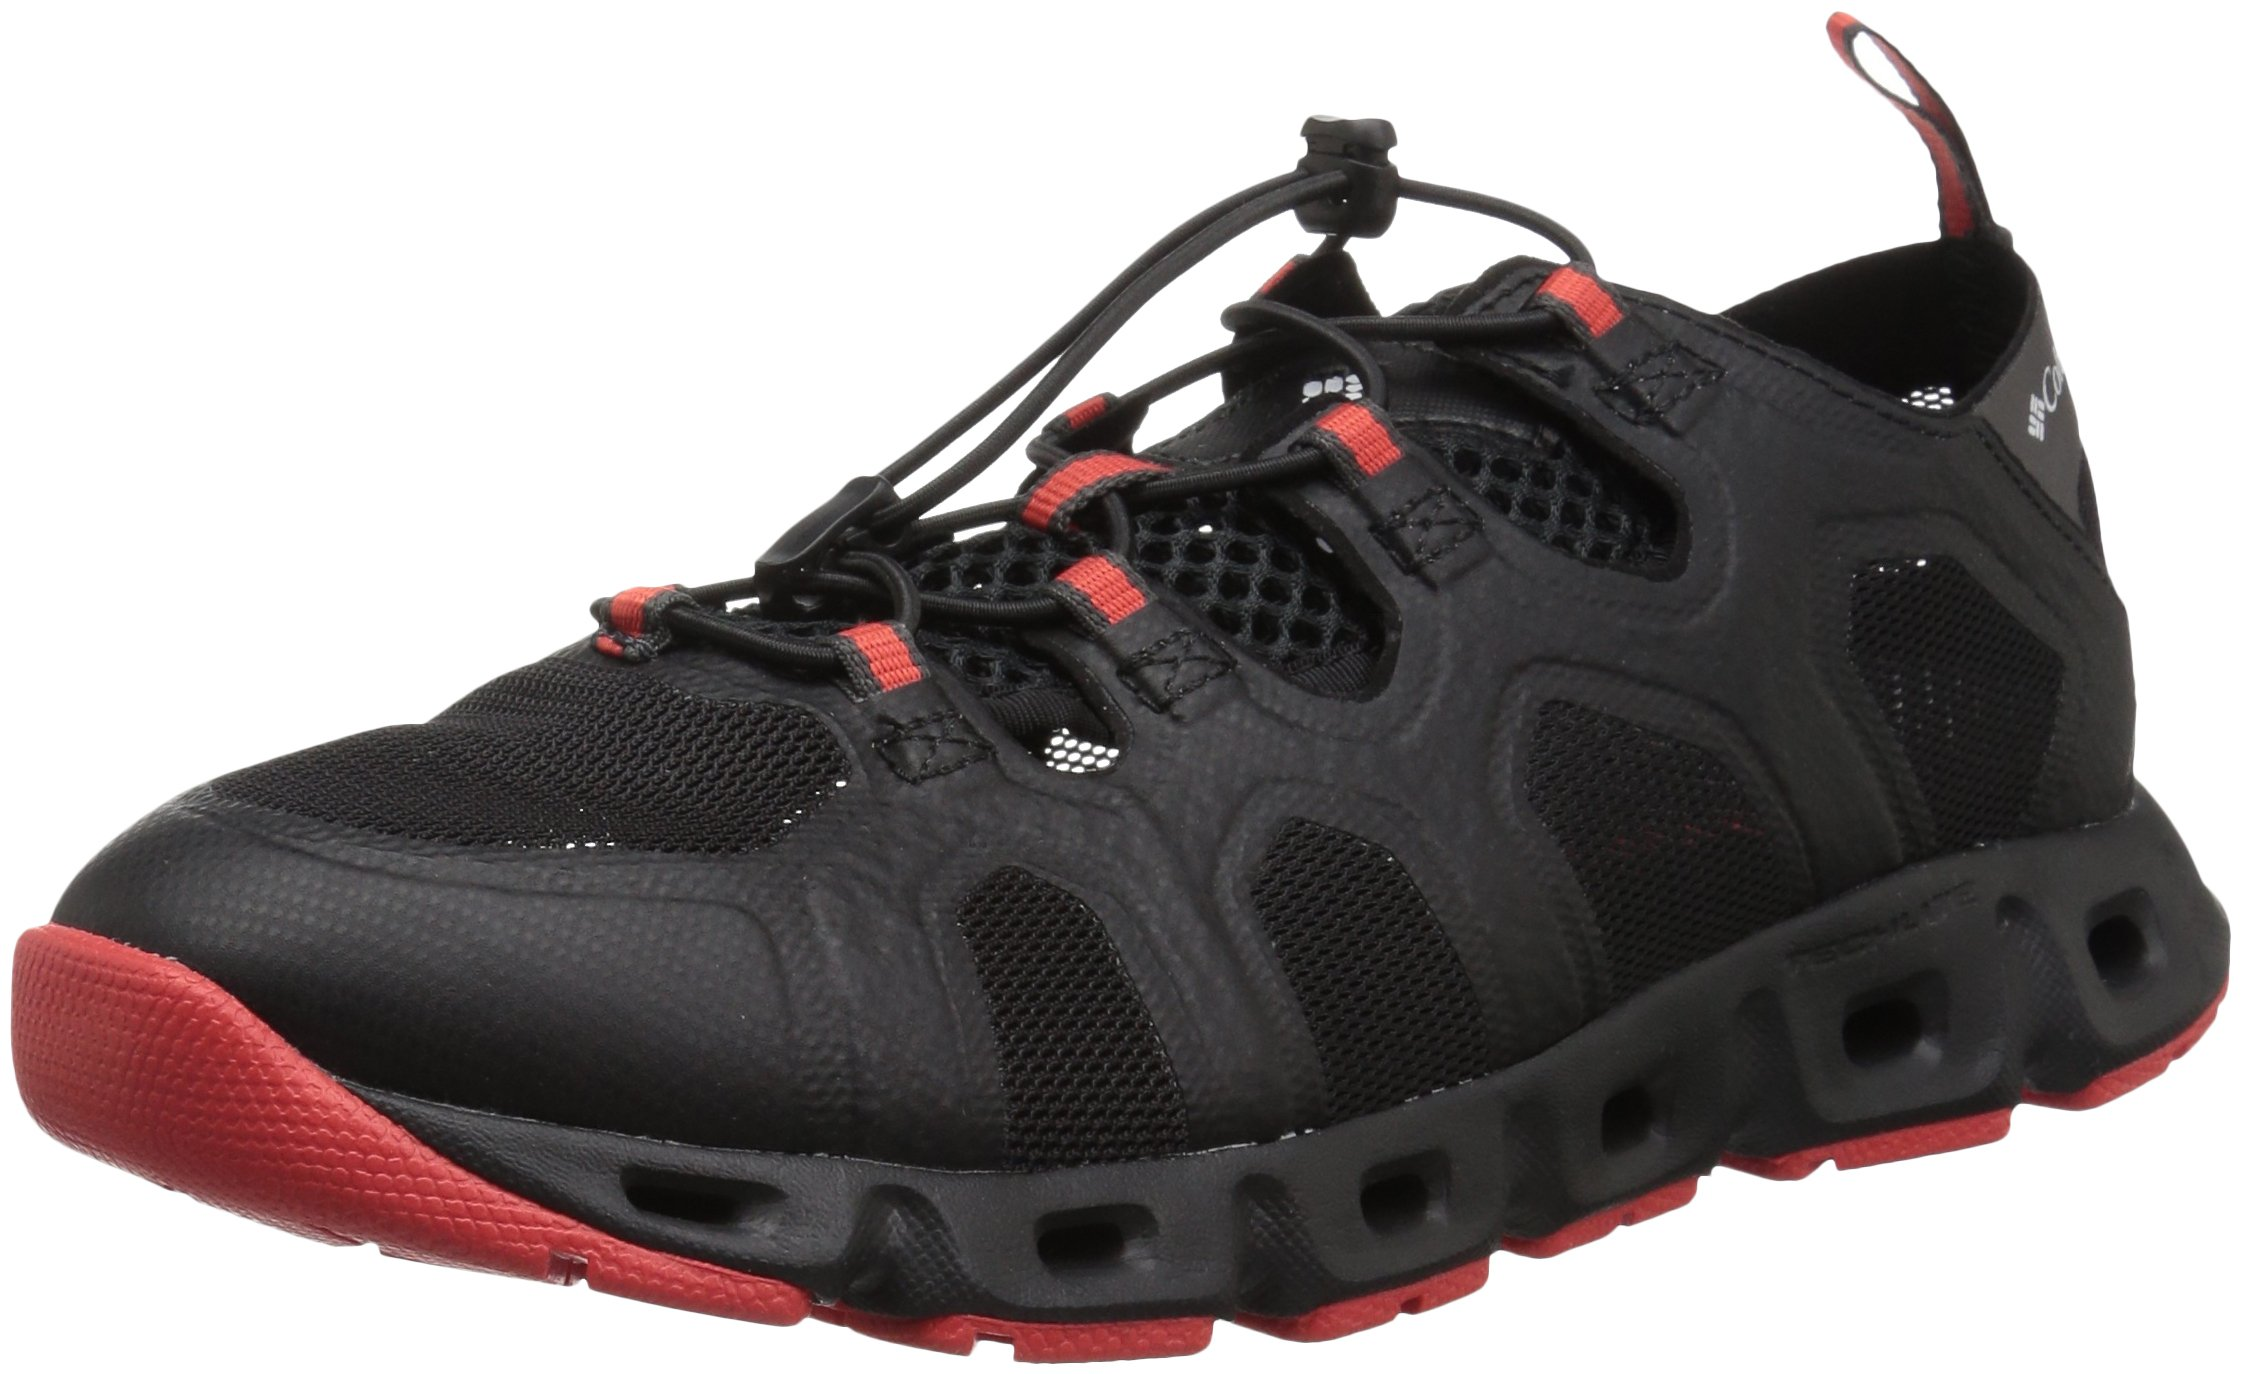 Columbia Men's Supervent III Water Shoe, Black, Poppy red, 12 Regular US by Columbia